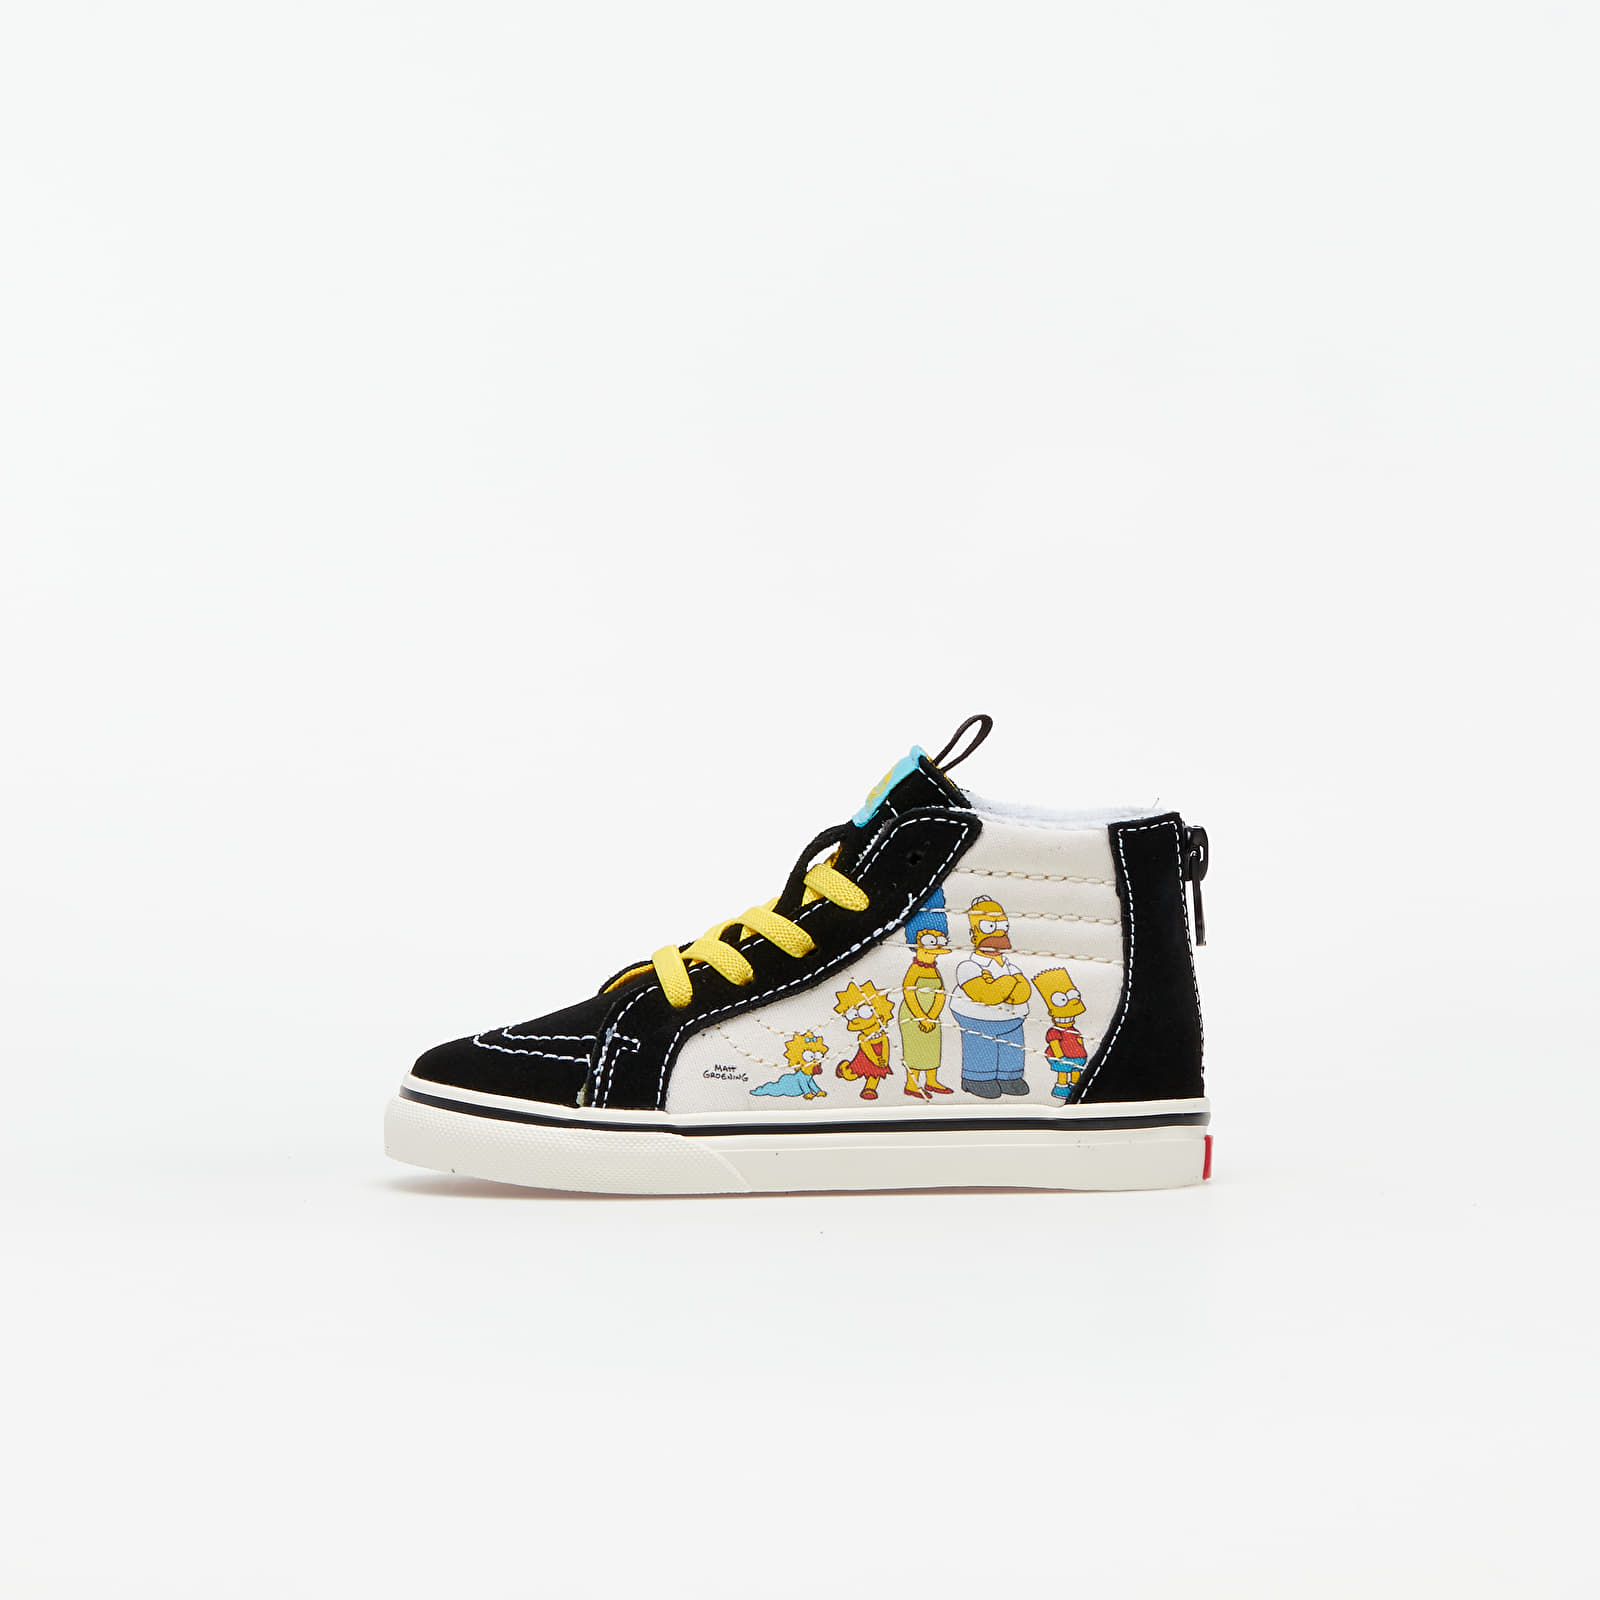 Gyerek Vans Sk8-Hi Zip (The Simpsons) 1987-2020